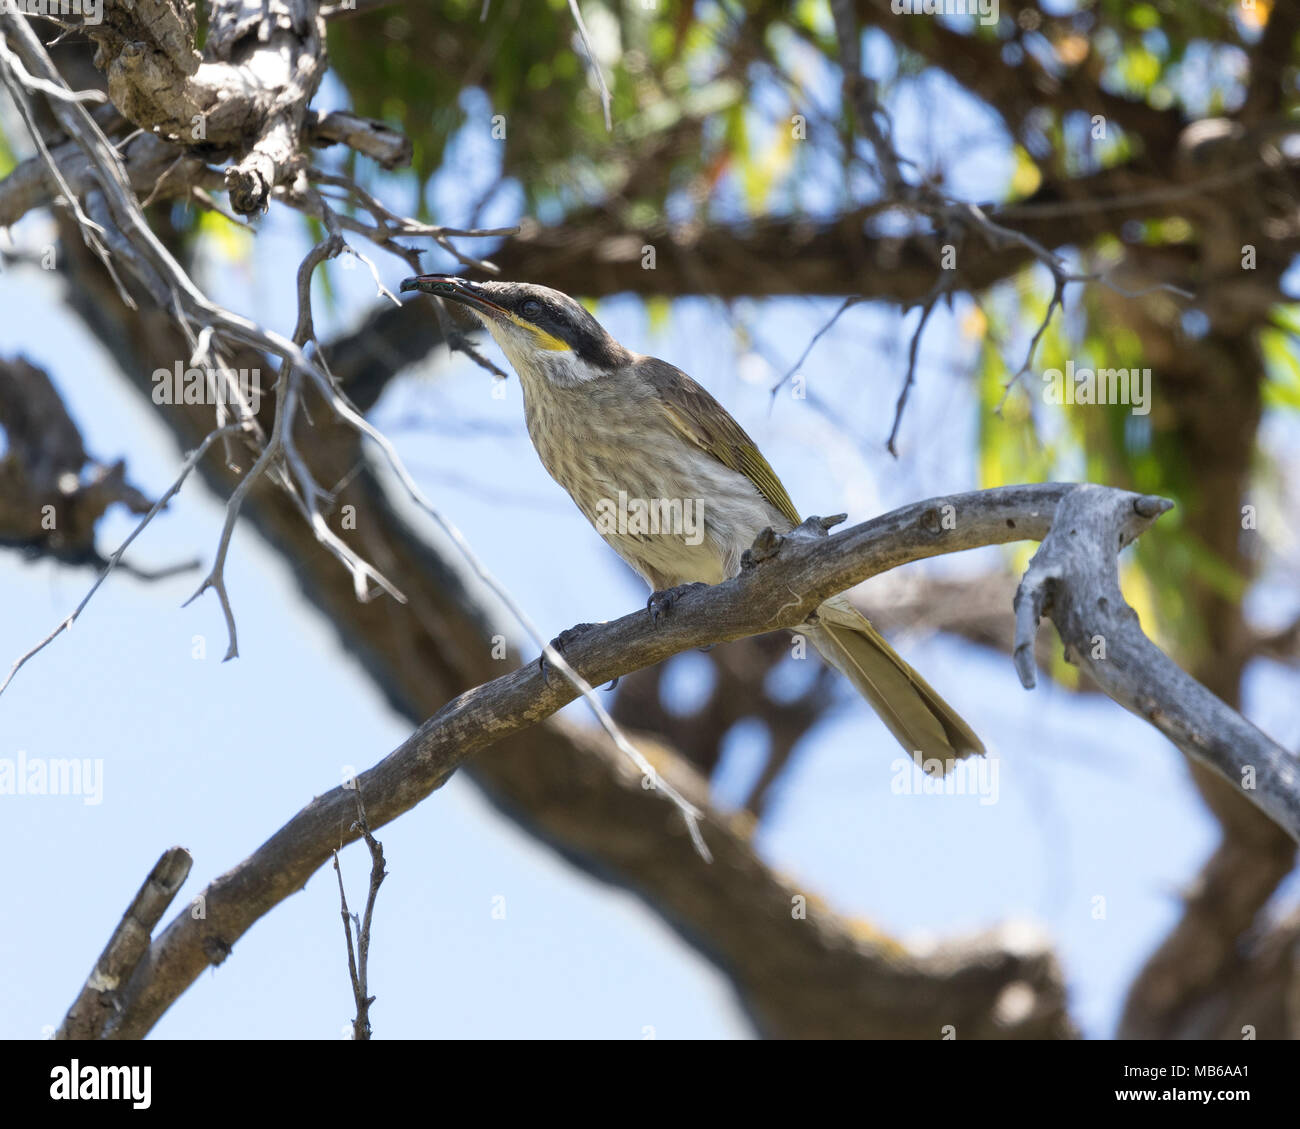 A Singing Honeyeater (Gavicalis virescens) with insect prey in its beak, on Penguin Island, offshore from Rockingham, Western Australia - Stock Image